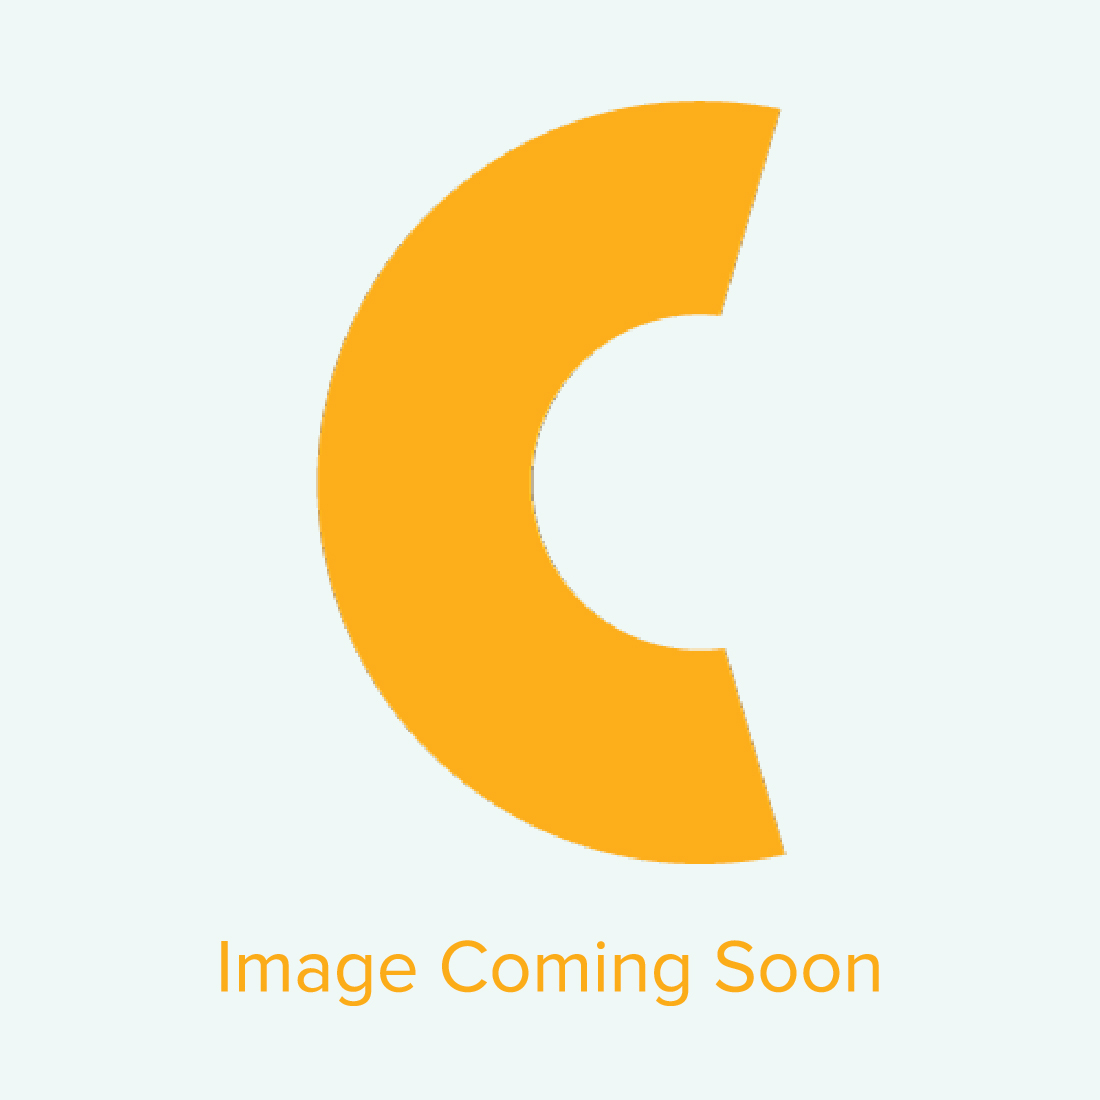 10 oz. Stainless Steel Sublimation Coffee Mug with Wire Handle